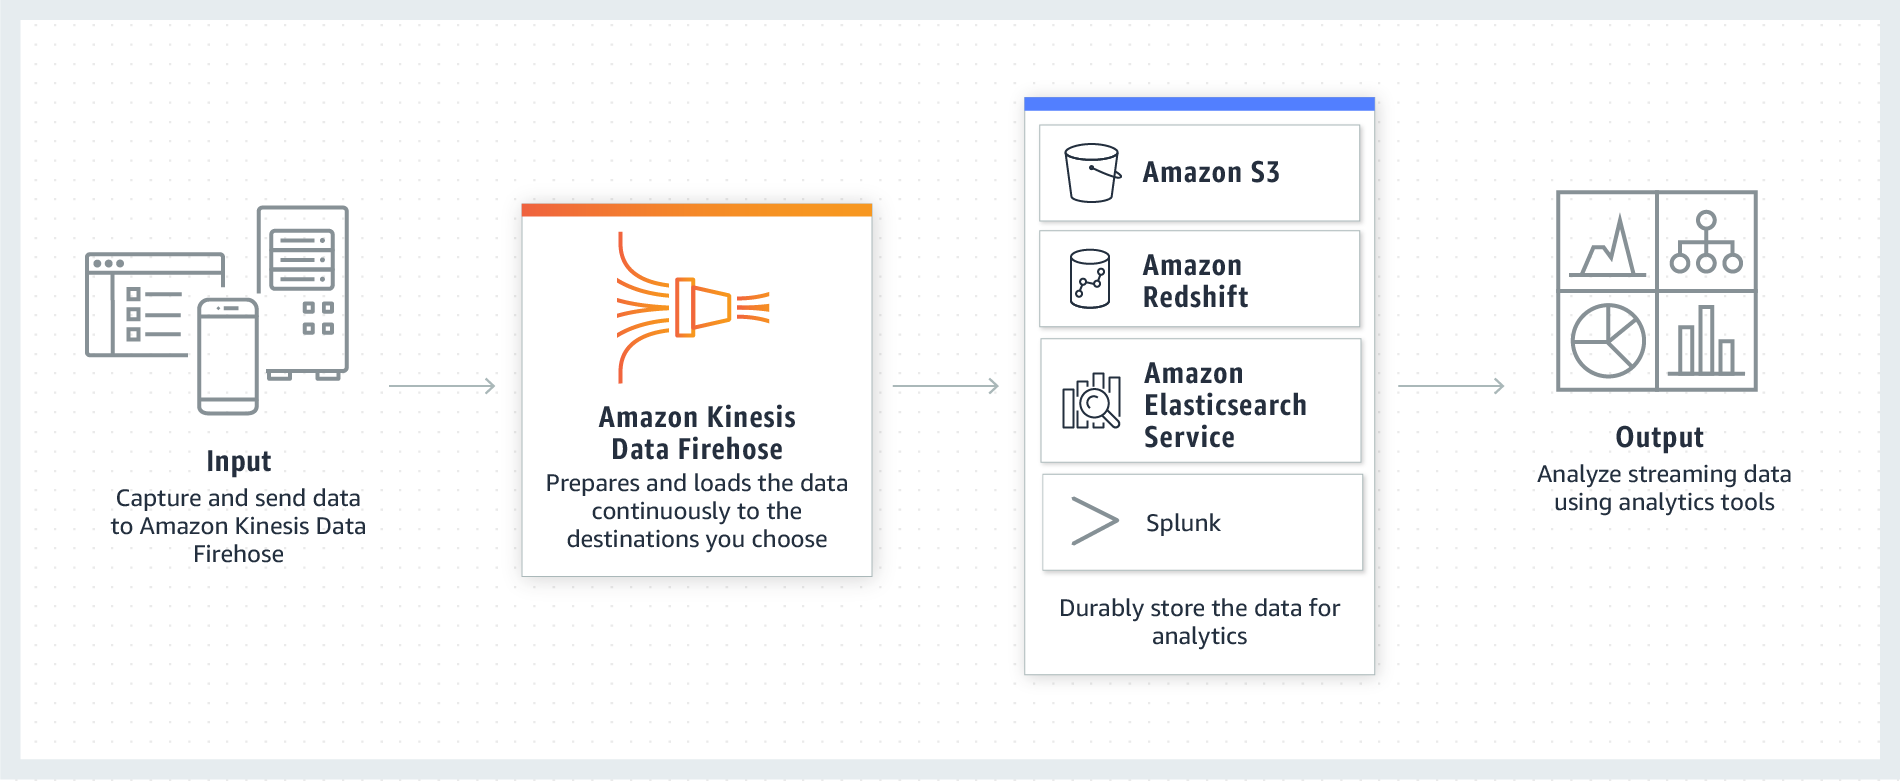 Funktionsweise von Amazon Kinesis Data Firehose